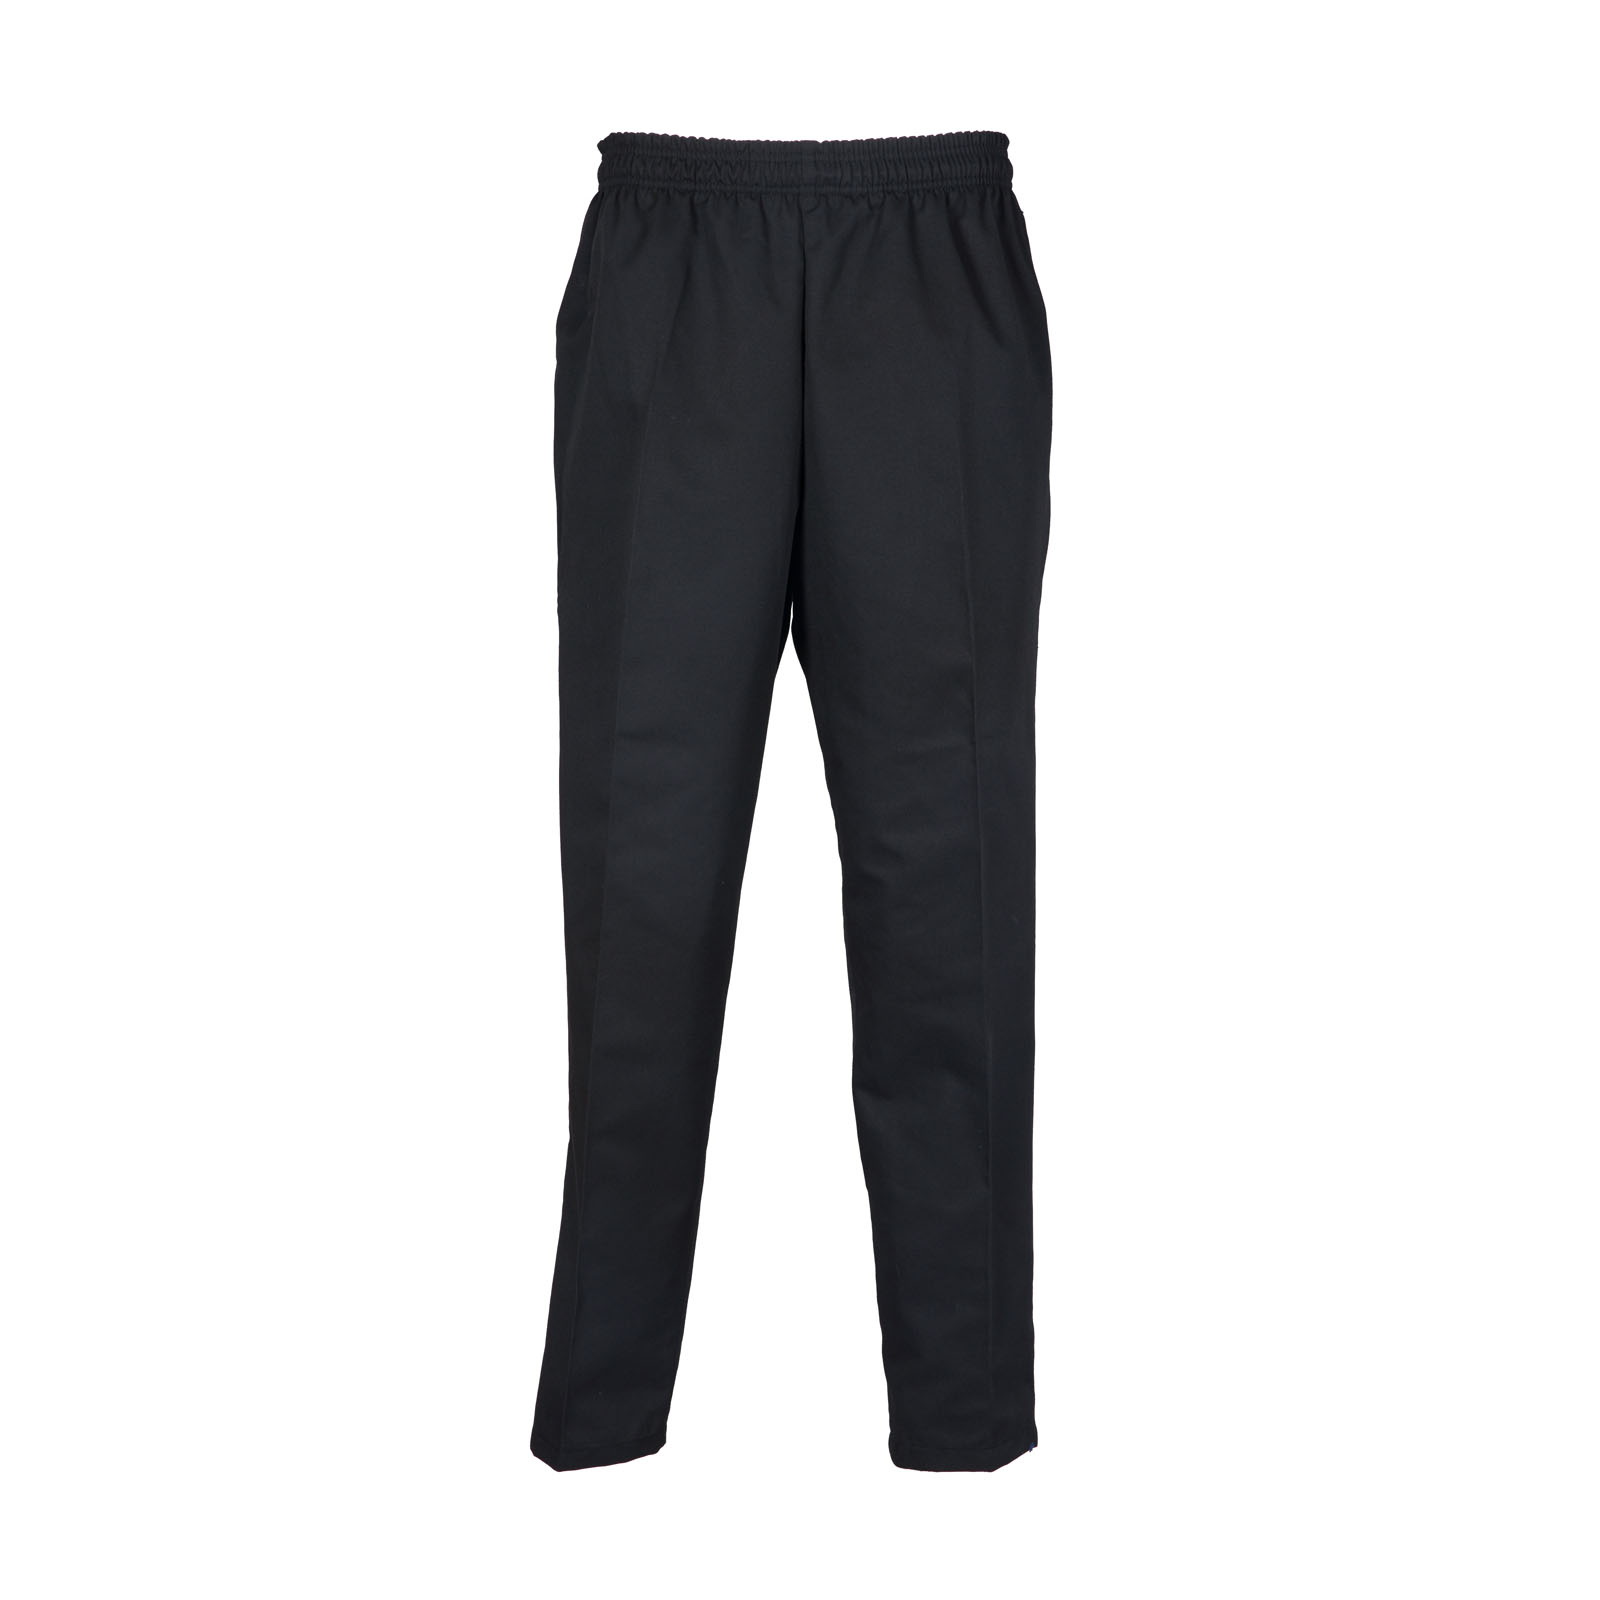 "B22 - 65/35 Poly/Cotton Blended Baggy Pants, Zipper Fly - Available in Black & ""Printed"" B/W Check"